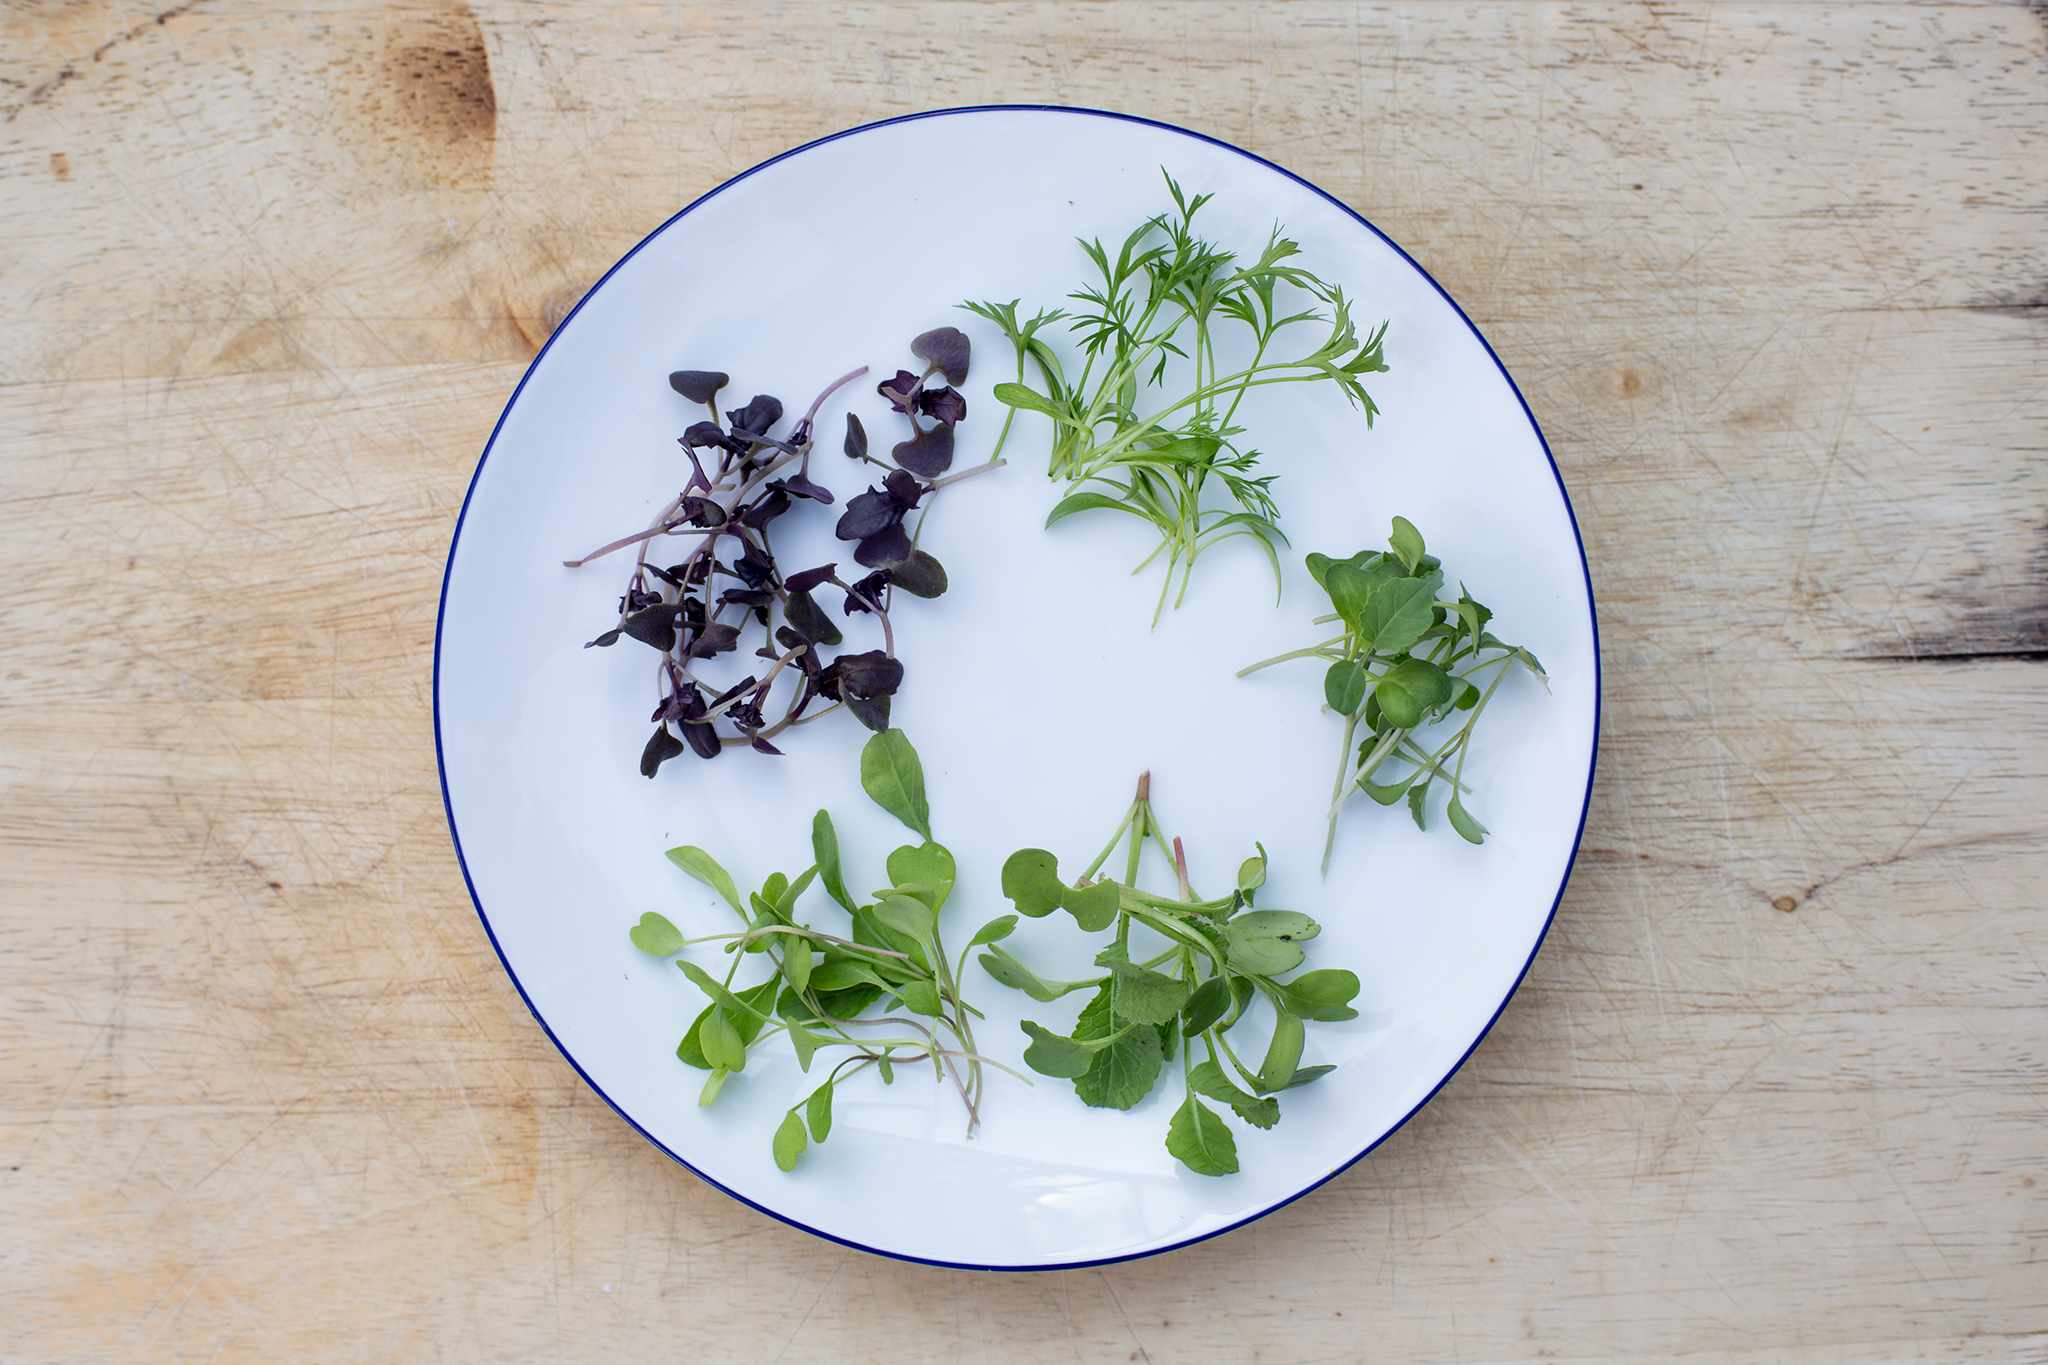 A selection of microgreens